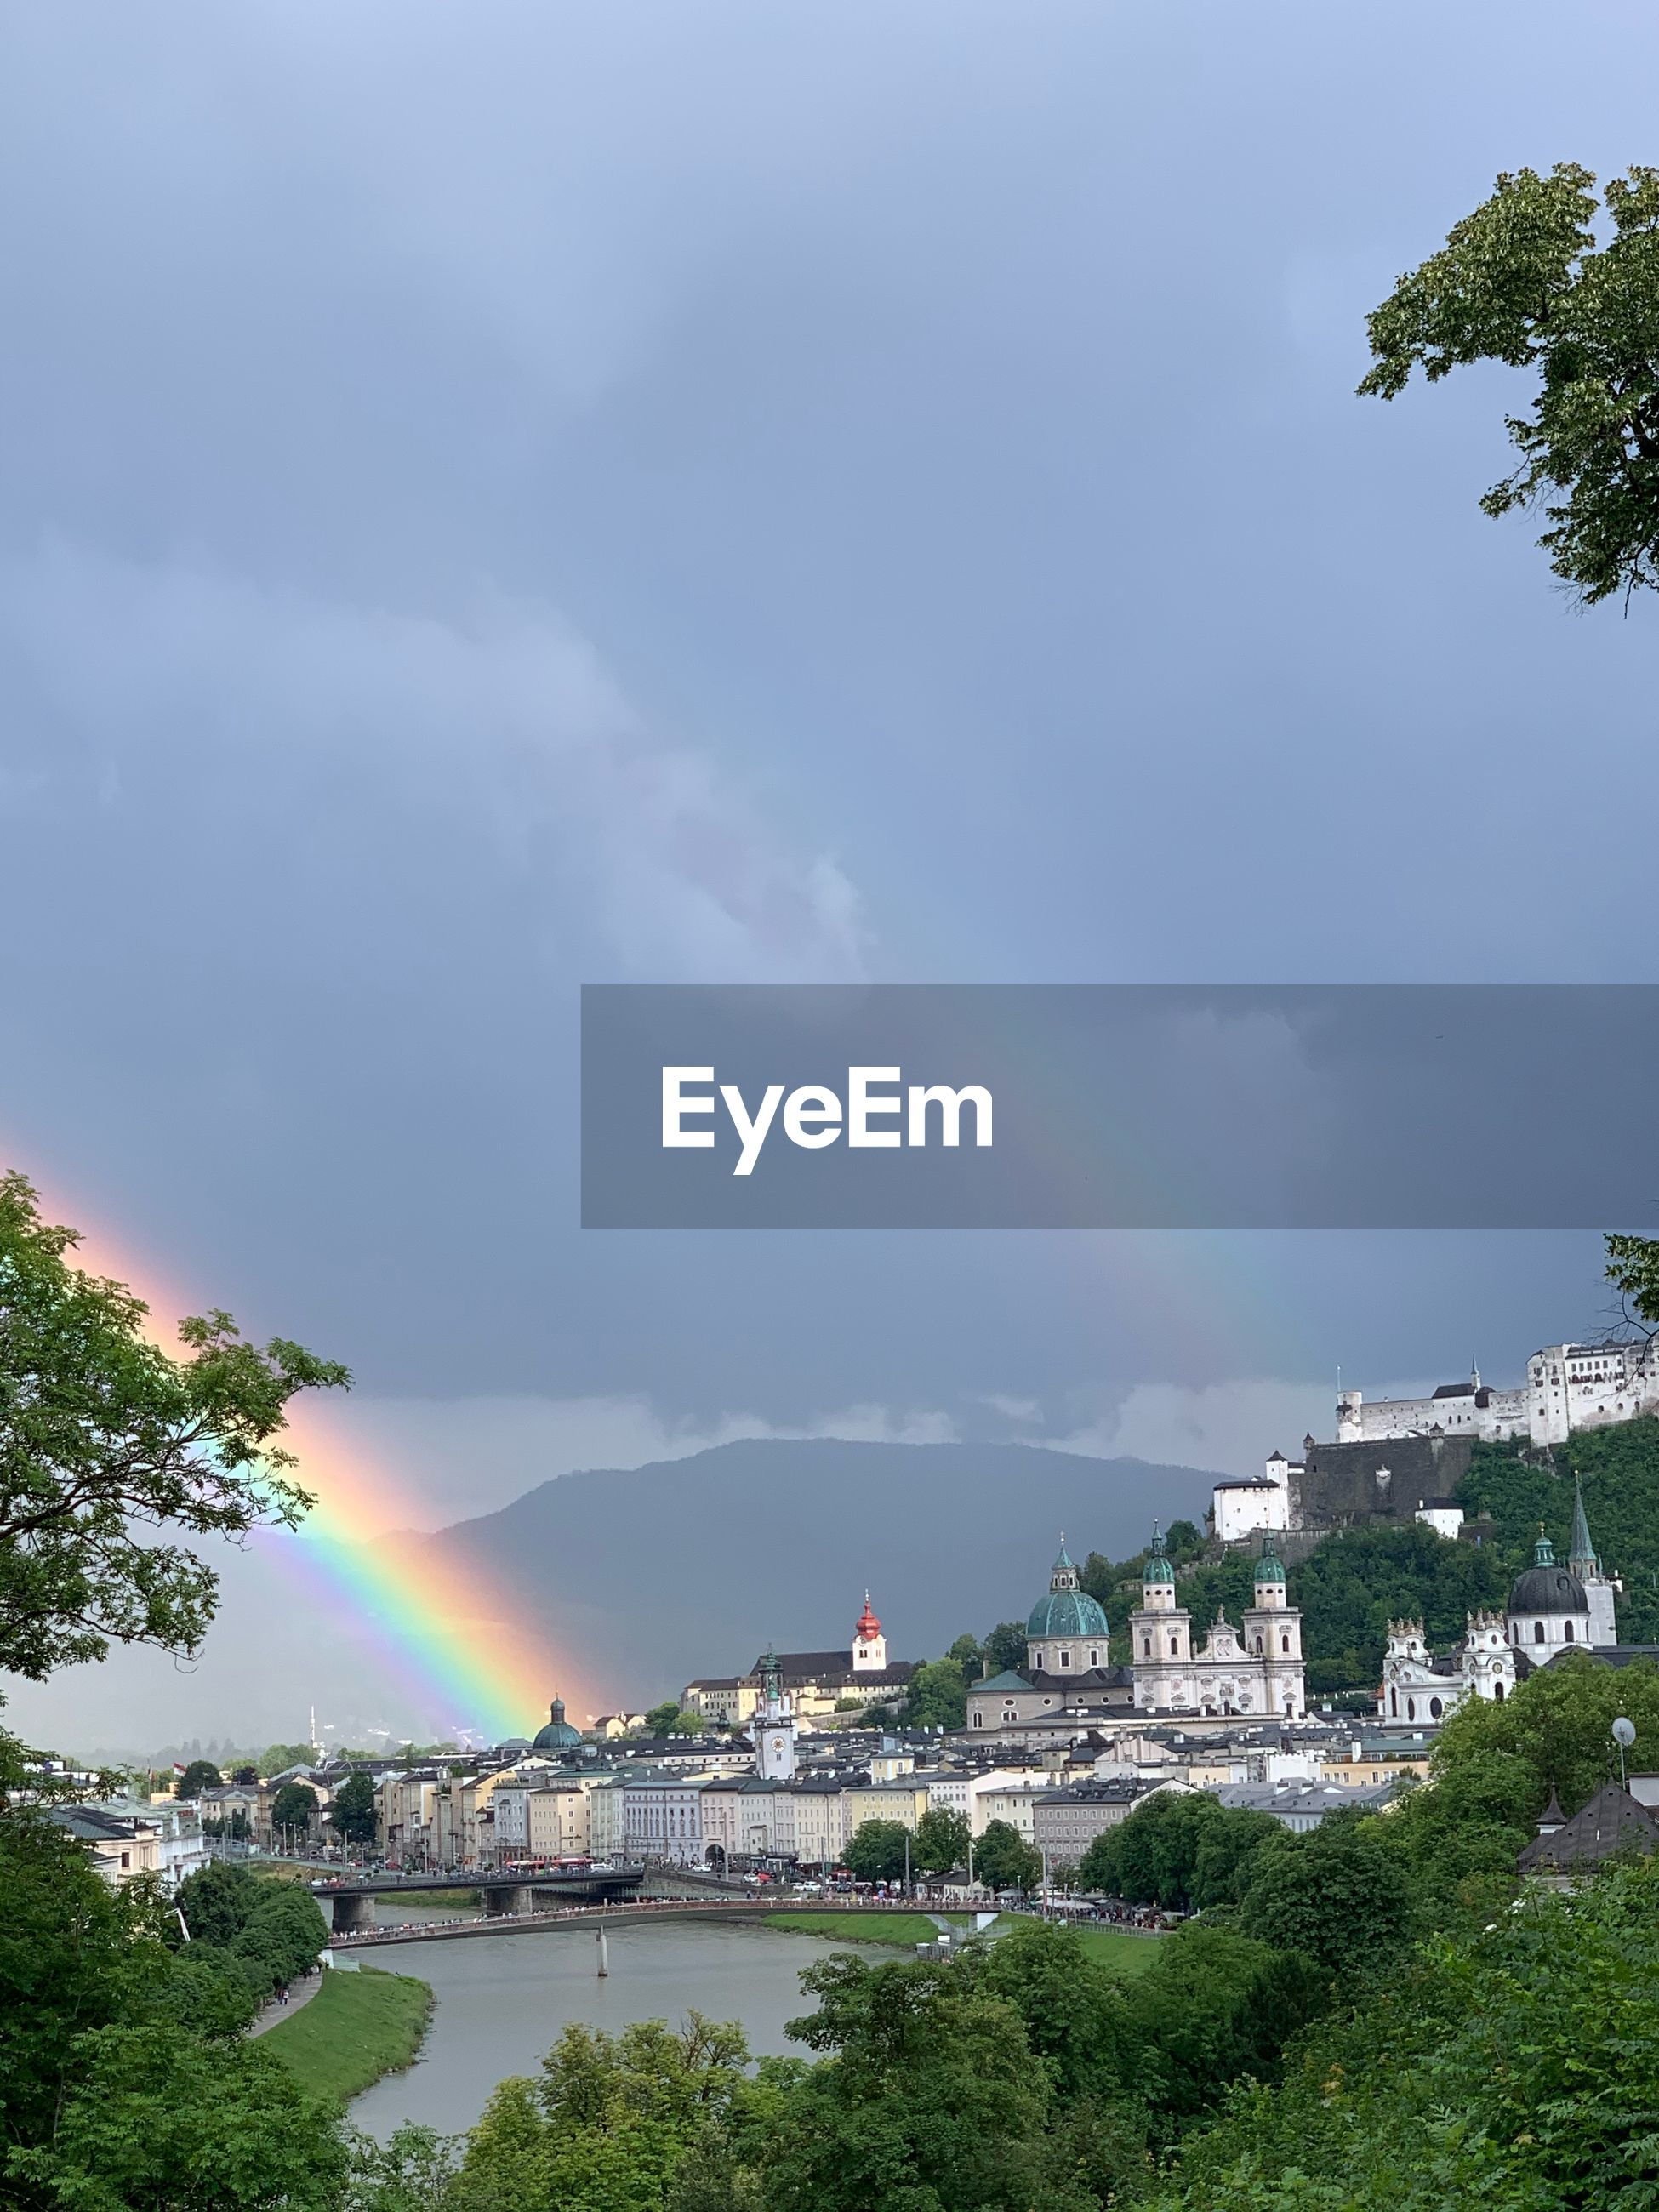 SCENIC VIEW OF RAINBOW OVER BUILDINGS IN CITY